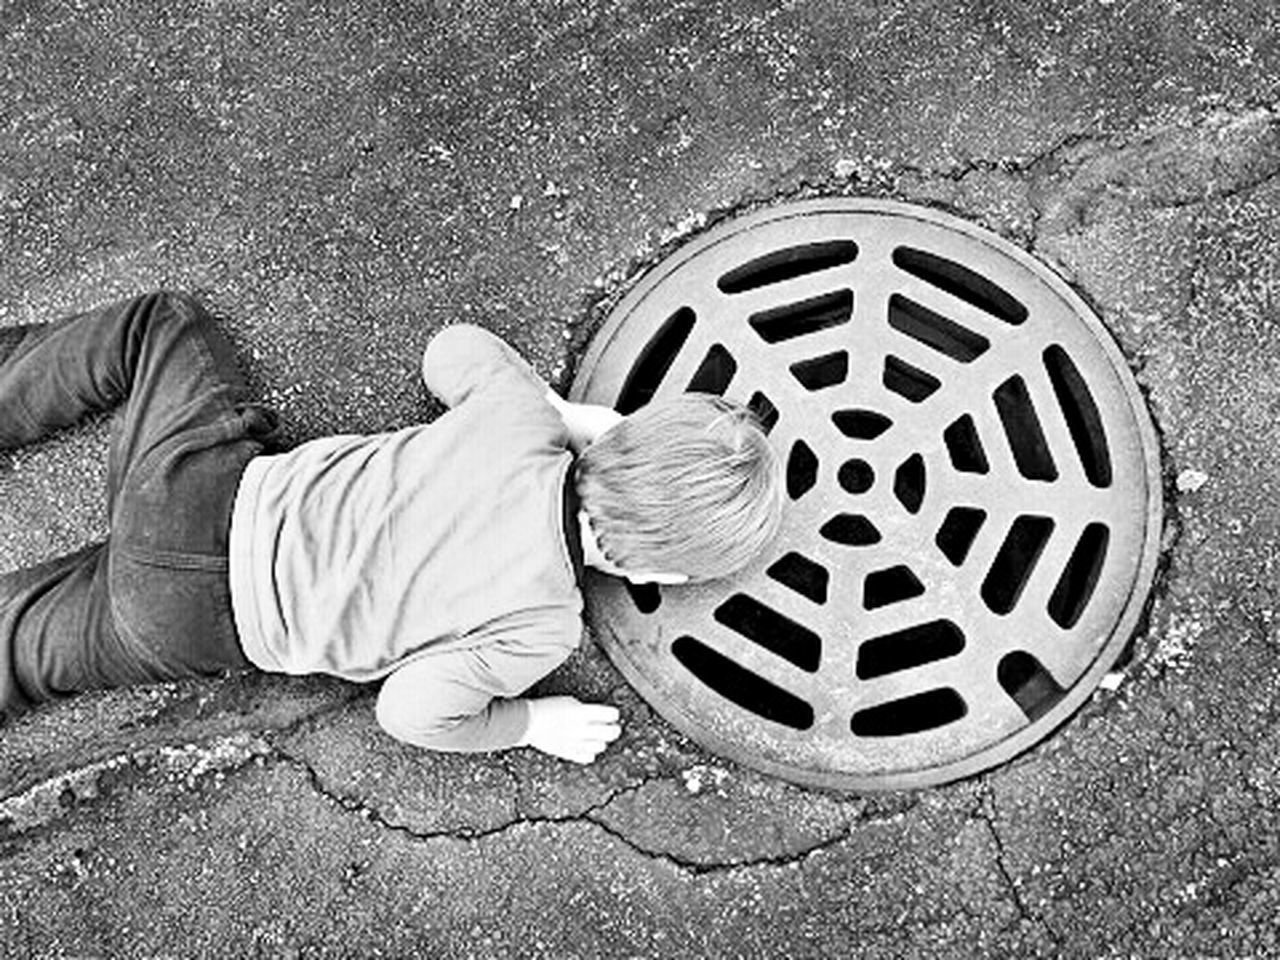 Boy looking in sewer Black And White Collection  Black&white Black And White Photography Blackandwhite Kids Children Children Photography Children's Portraits Childhood Memories Kids Playing Child Childhood Having Fun Learn Playing Boy Sewer Sewercover Sewer Drain Havingfun Wonder Black & White Black And White Exploring Explorer